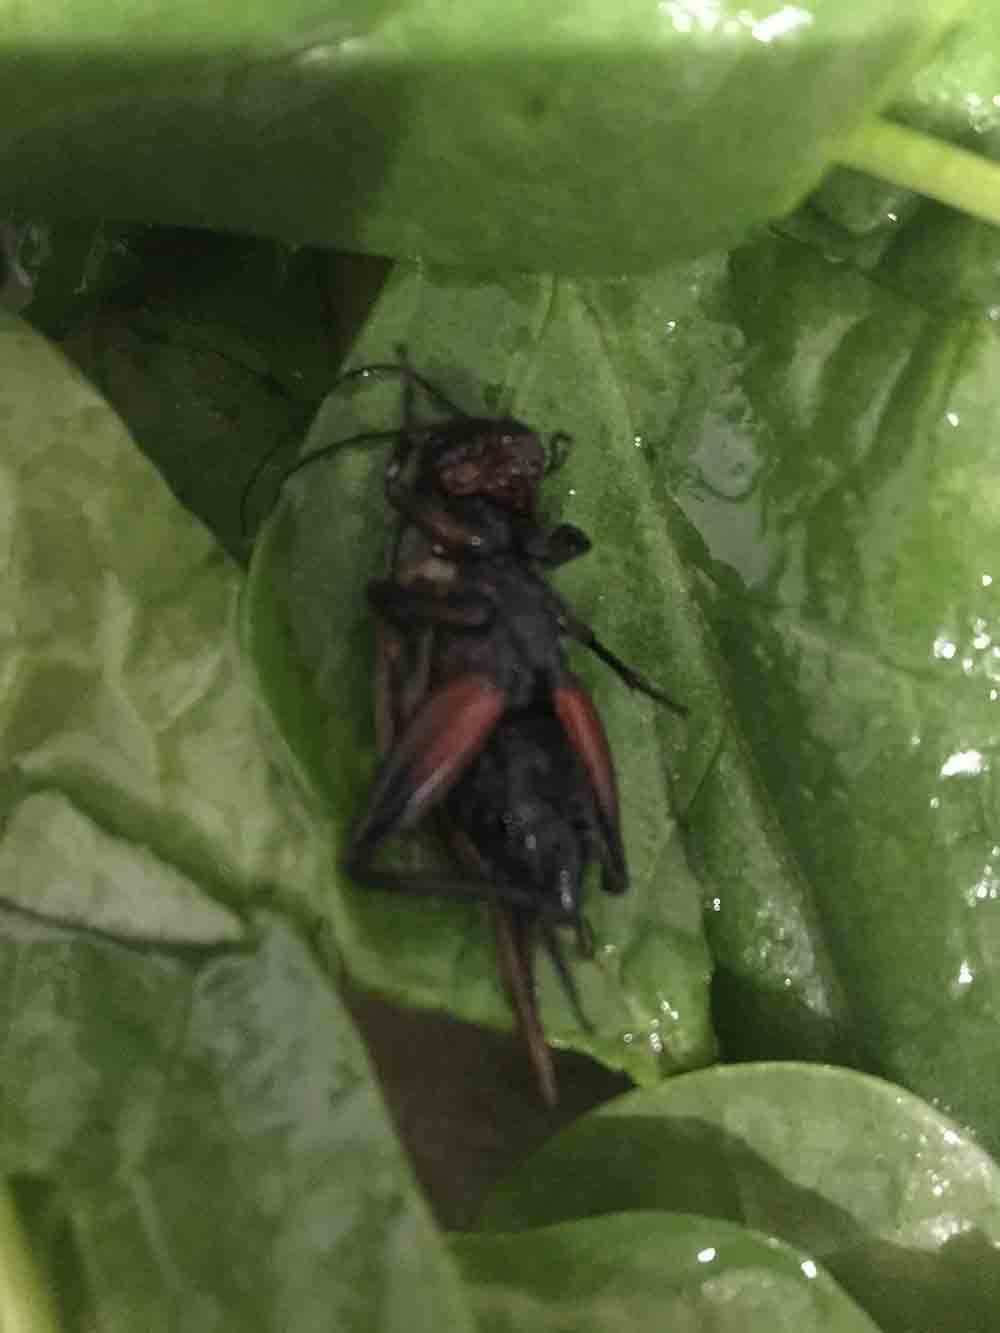 """A LIDL customer has shared revolting images showing how she allegedly discovered a dead """"cricket"""" inside her spinach. - Food and Drink News"""